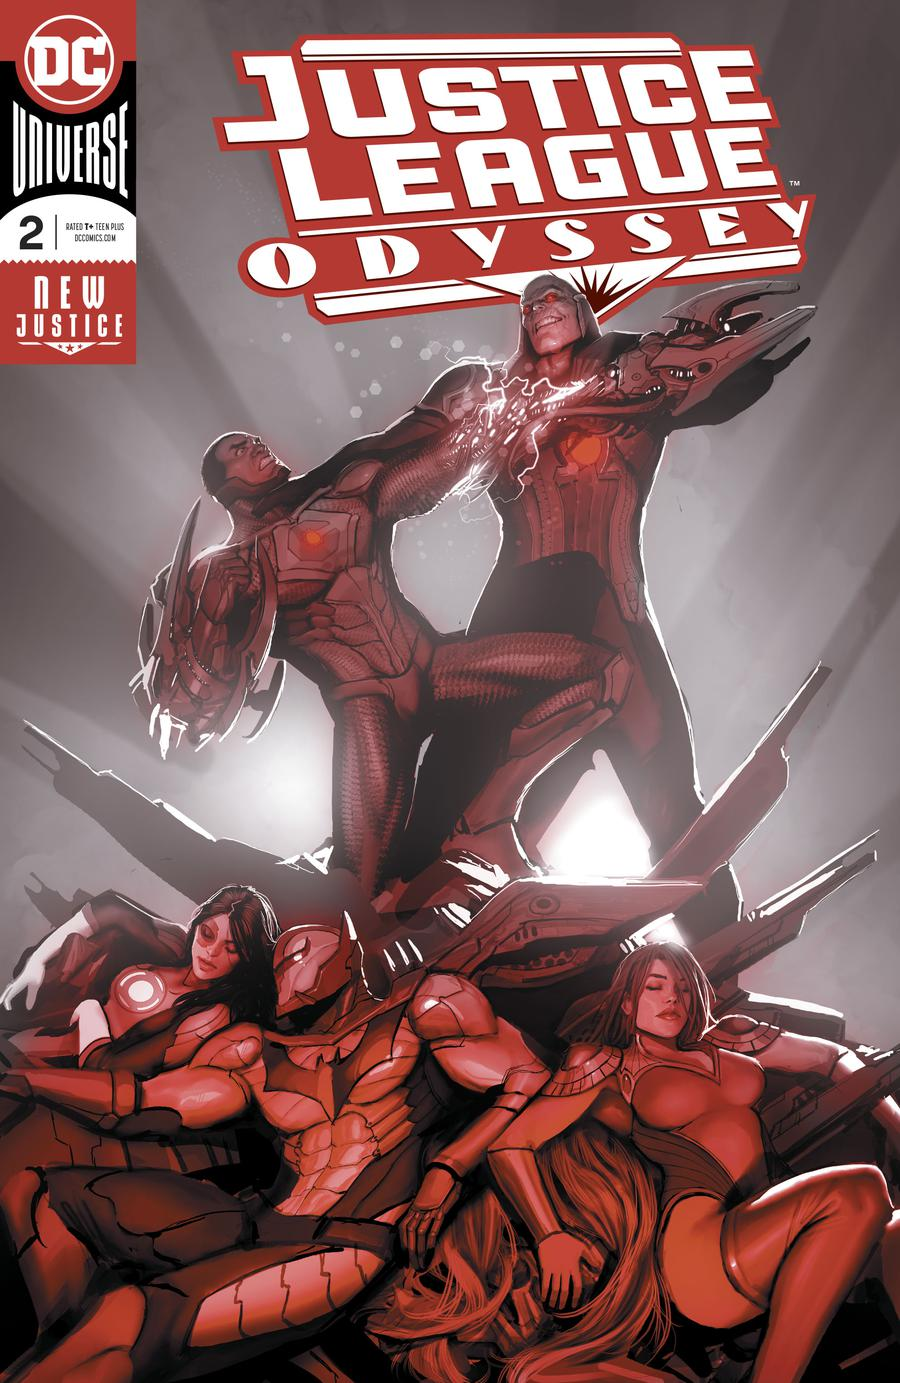 Justice League Odyssey #2 Cover A Regular Stjepan Sejic Enhanced Foil Cover